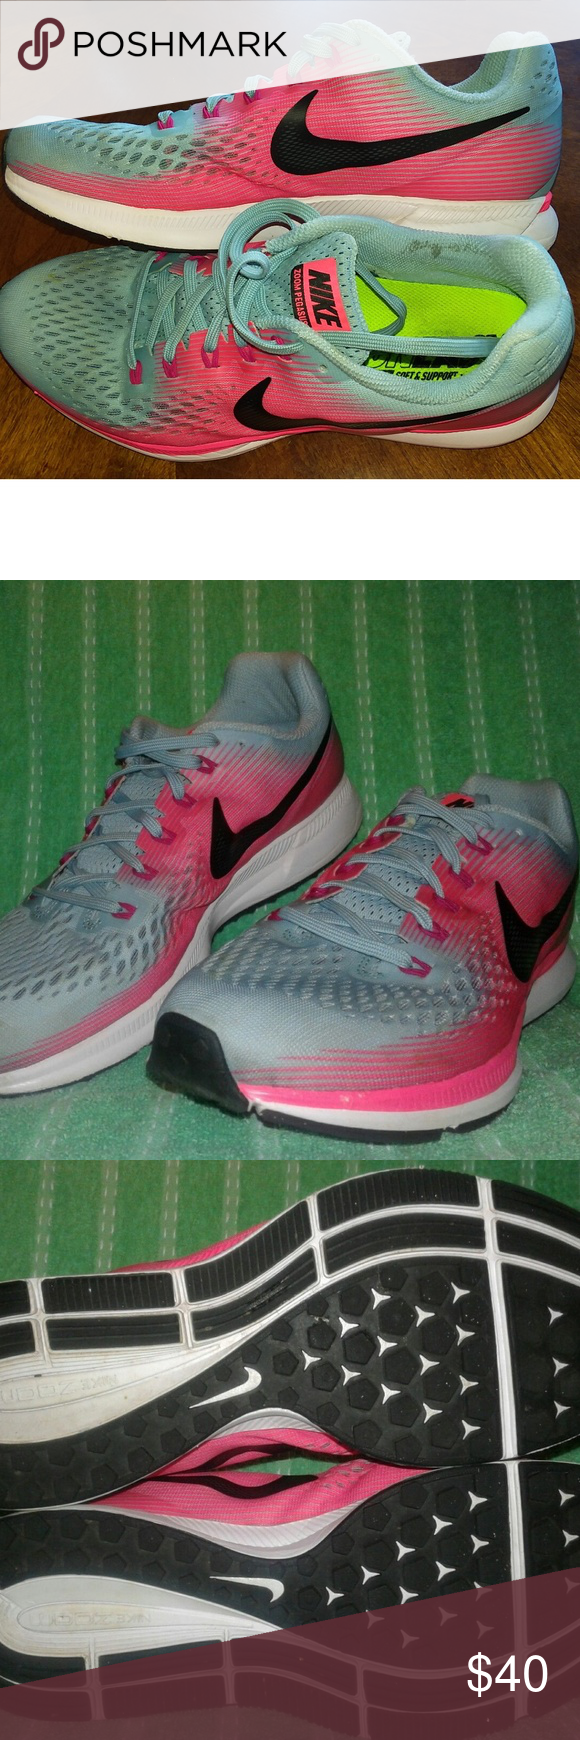 huge discount 86924 2ca8f NIKE Zoom Pegasus 34 Running Shoes 11 -Pink Blue Womens Nike ...